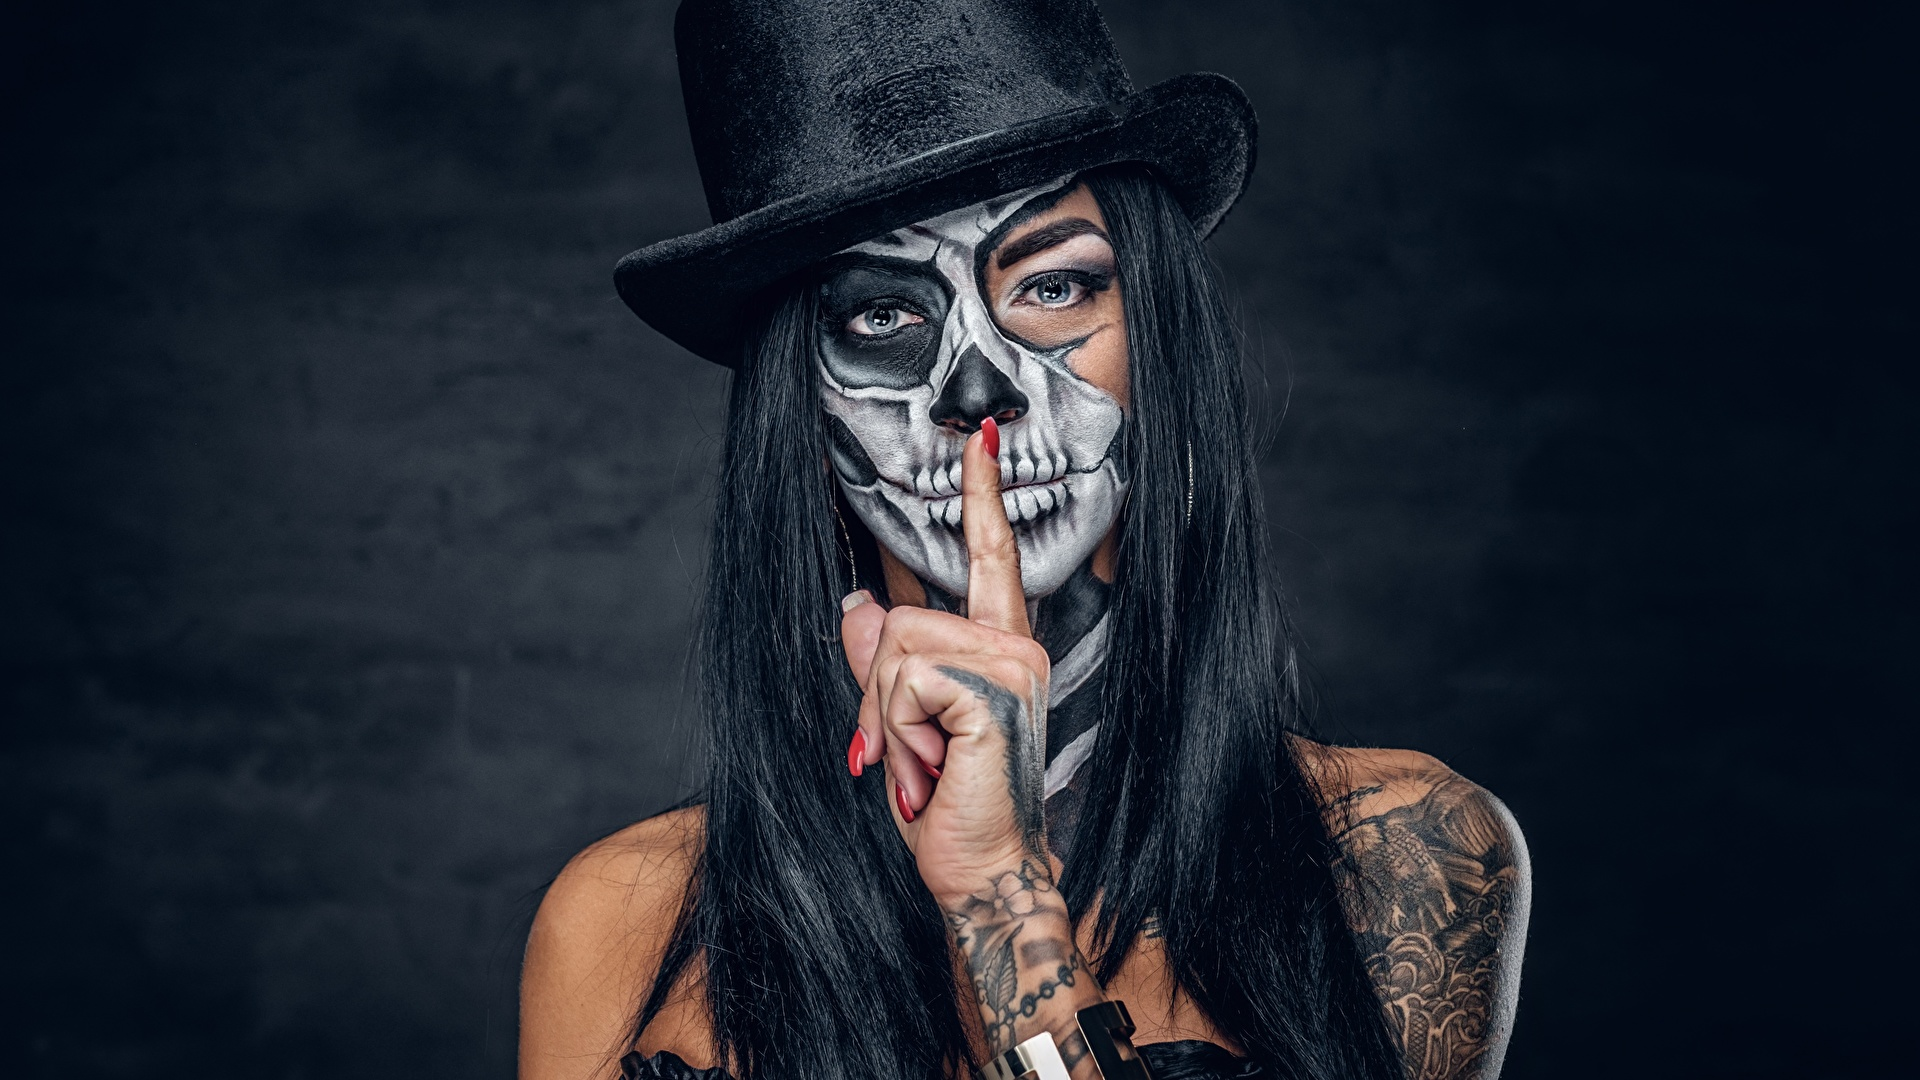 Images Tattoos Brunette Girl Makeup Day Of The Dead Hat 1920x1080